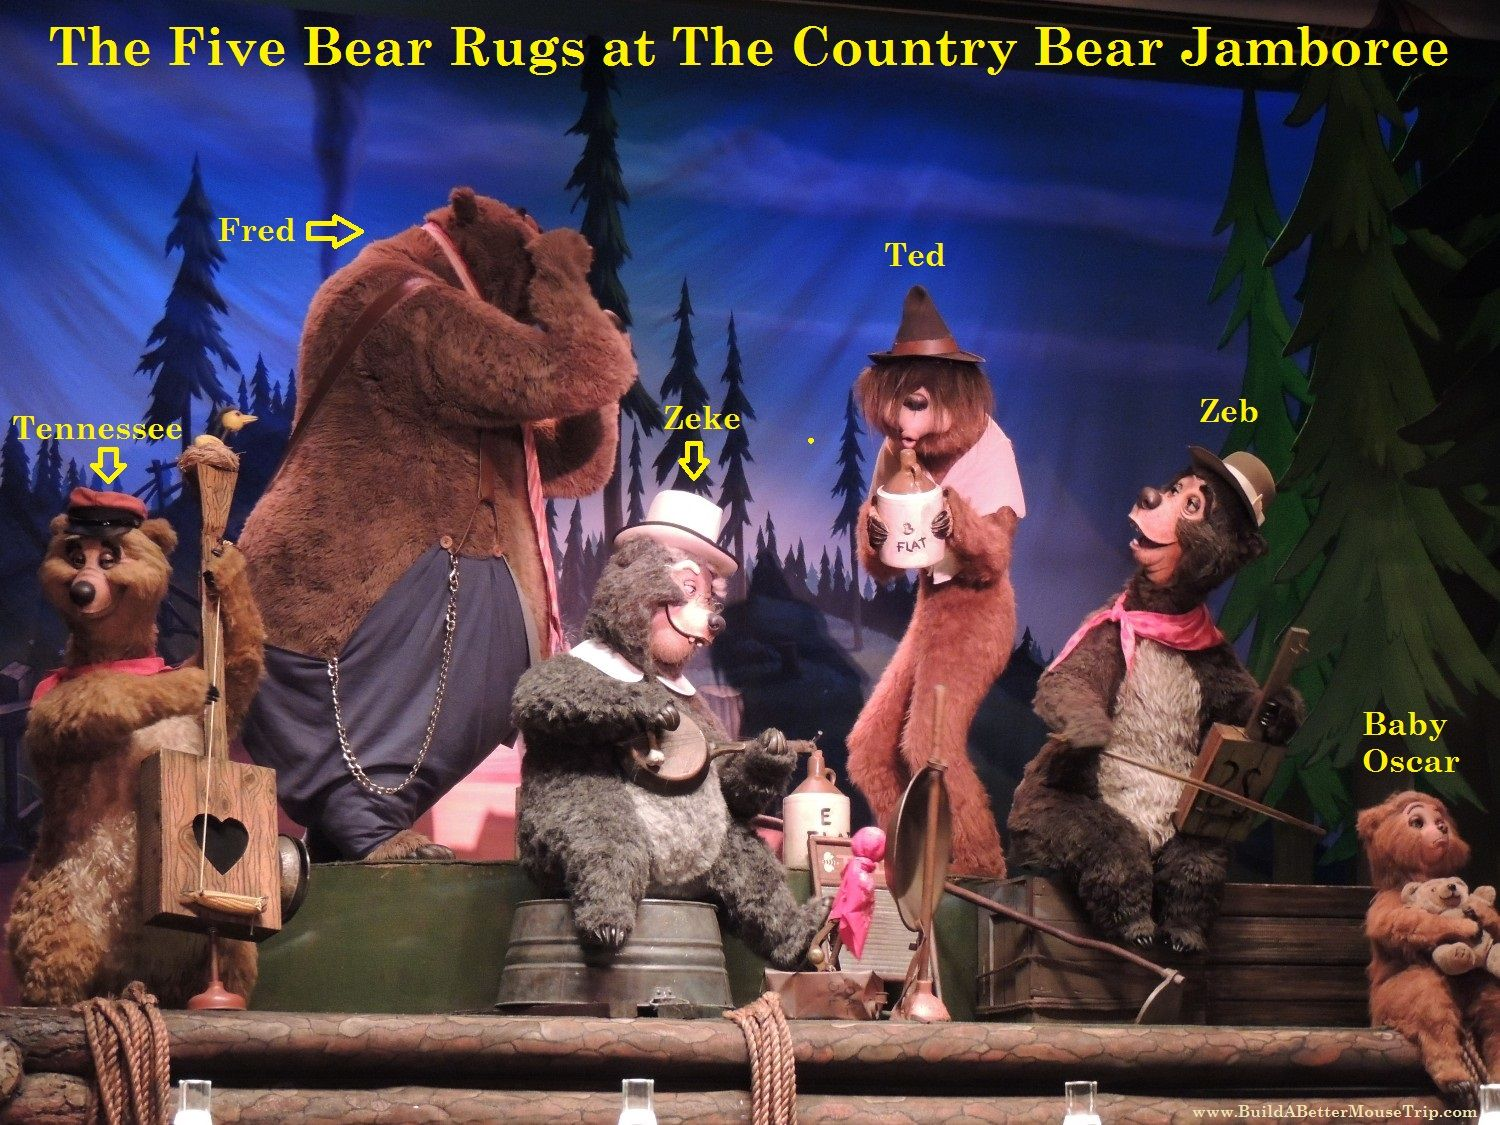 """""""The Five Bear Rugs"""" band at the Country Bear Jamboree in the Magic Kingdom at Disney World.   In case you're wondering, Zeb is the father of Baby Oscar.   #CountryBears"""